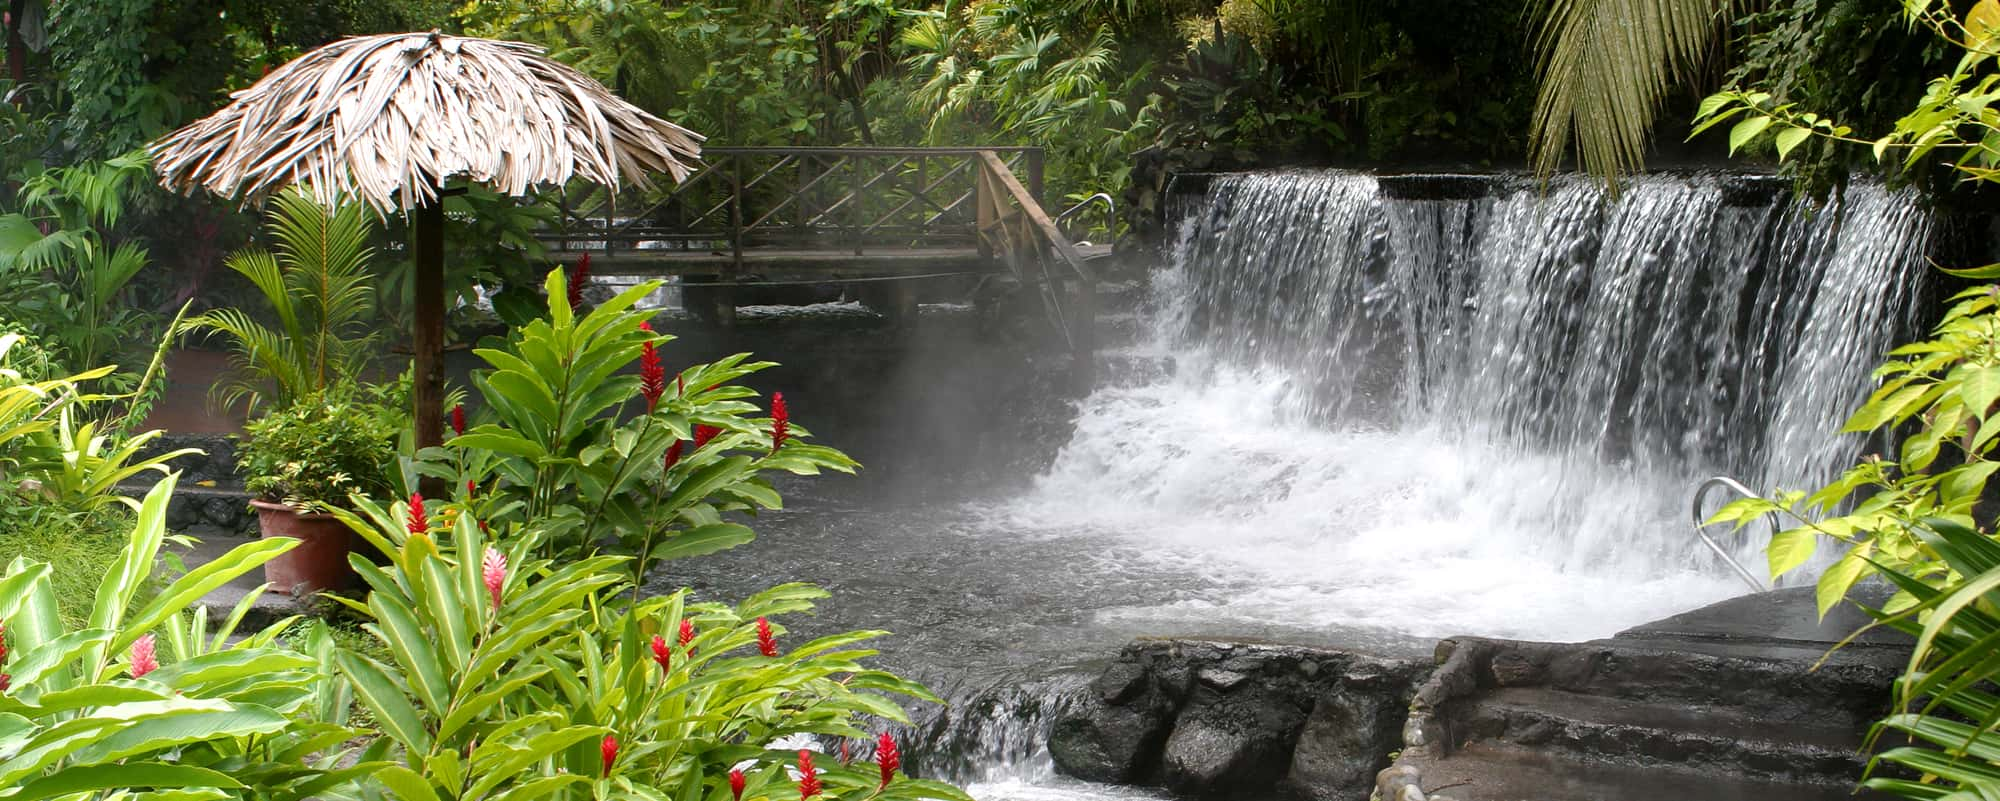 Arenal Volcano Hotels Costa Rica Resorts Hotel Luxury La Fortuna Lodging Spas Hot Springs Cabins Chalets Nature Lodges Views